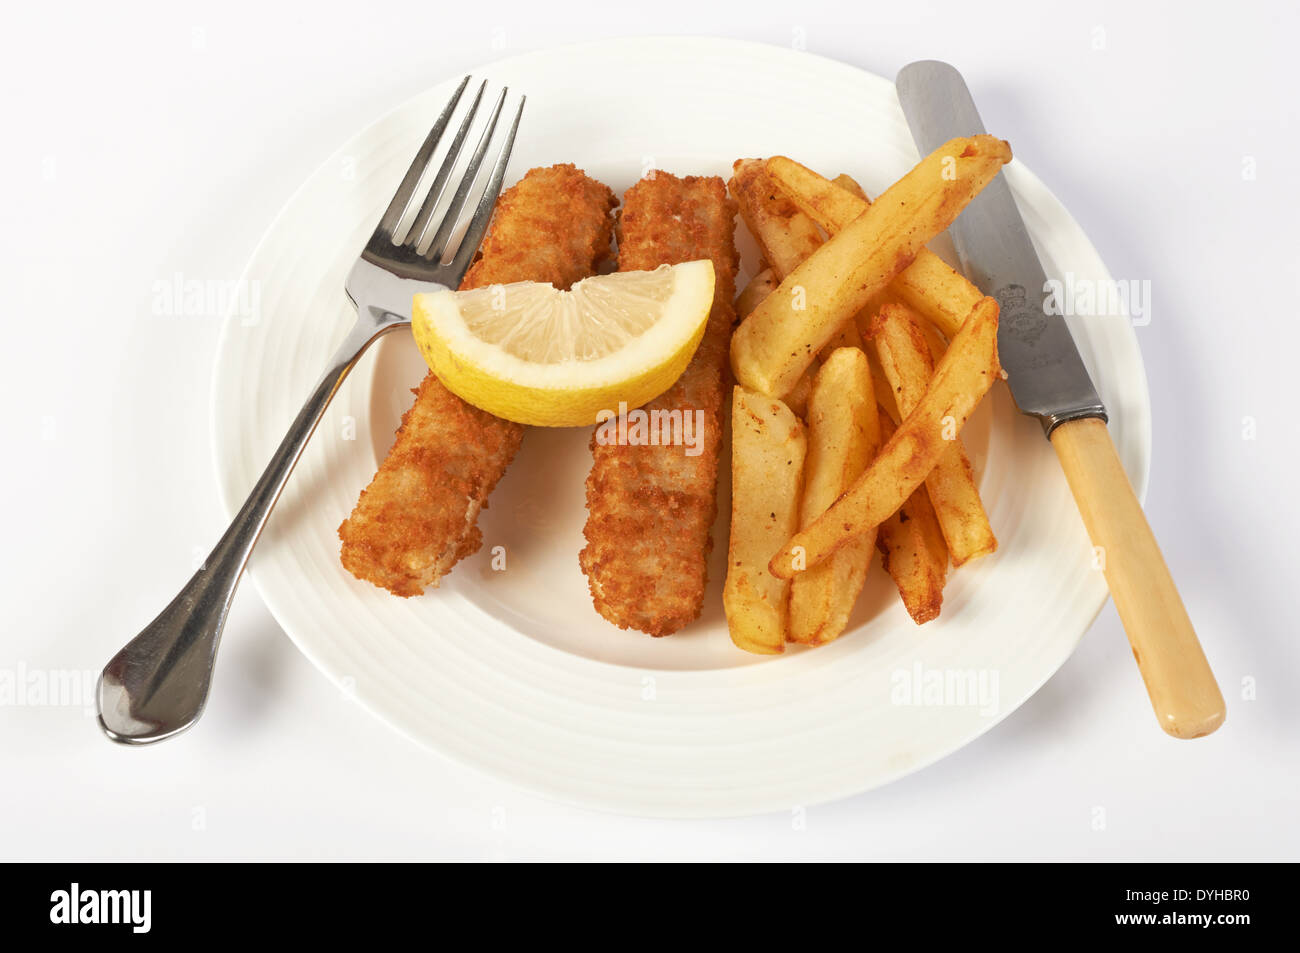 Gourmet fish fingers & chips - Stock Image